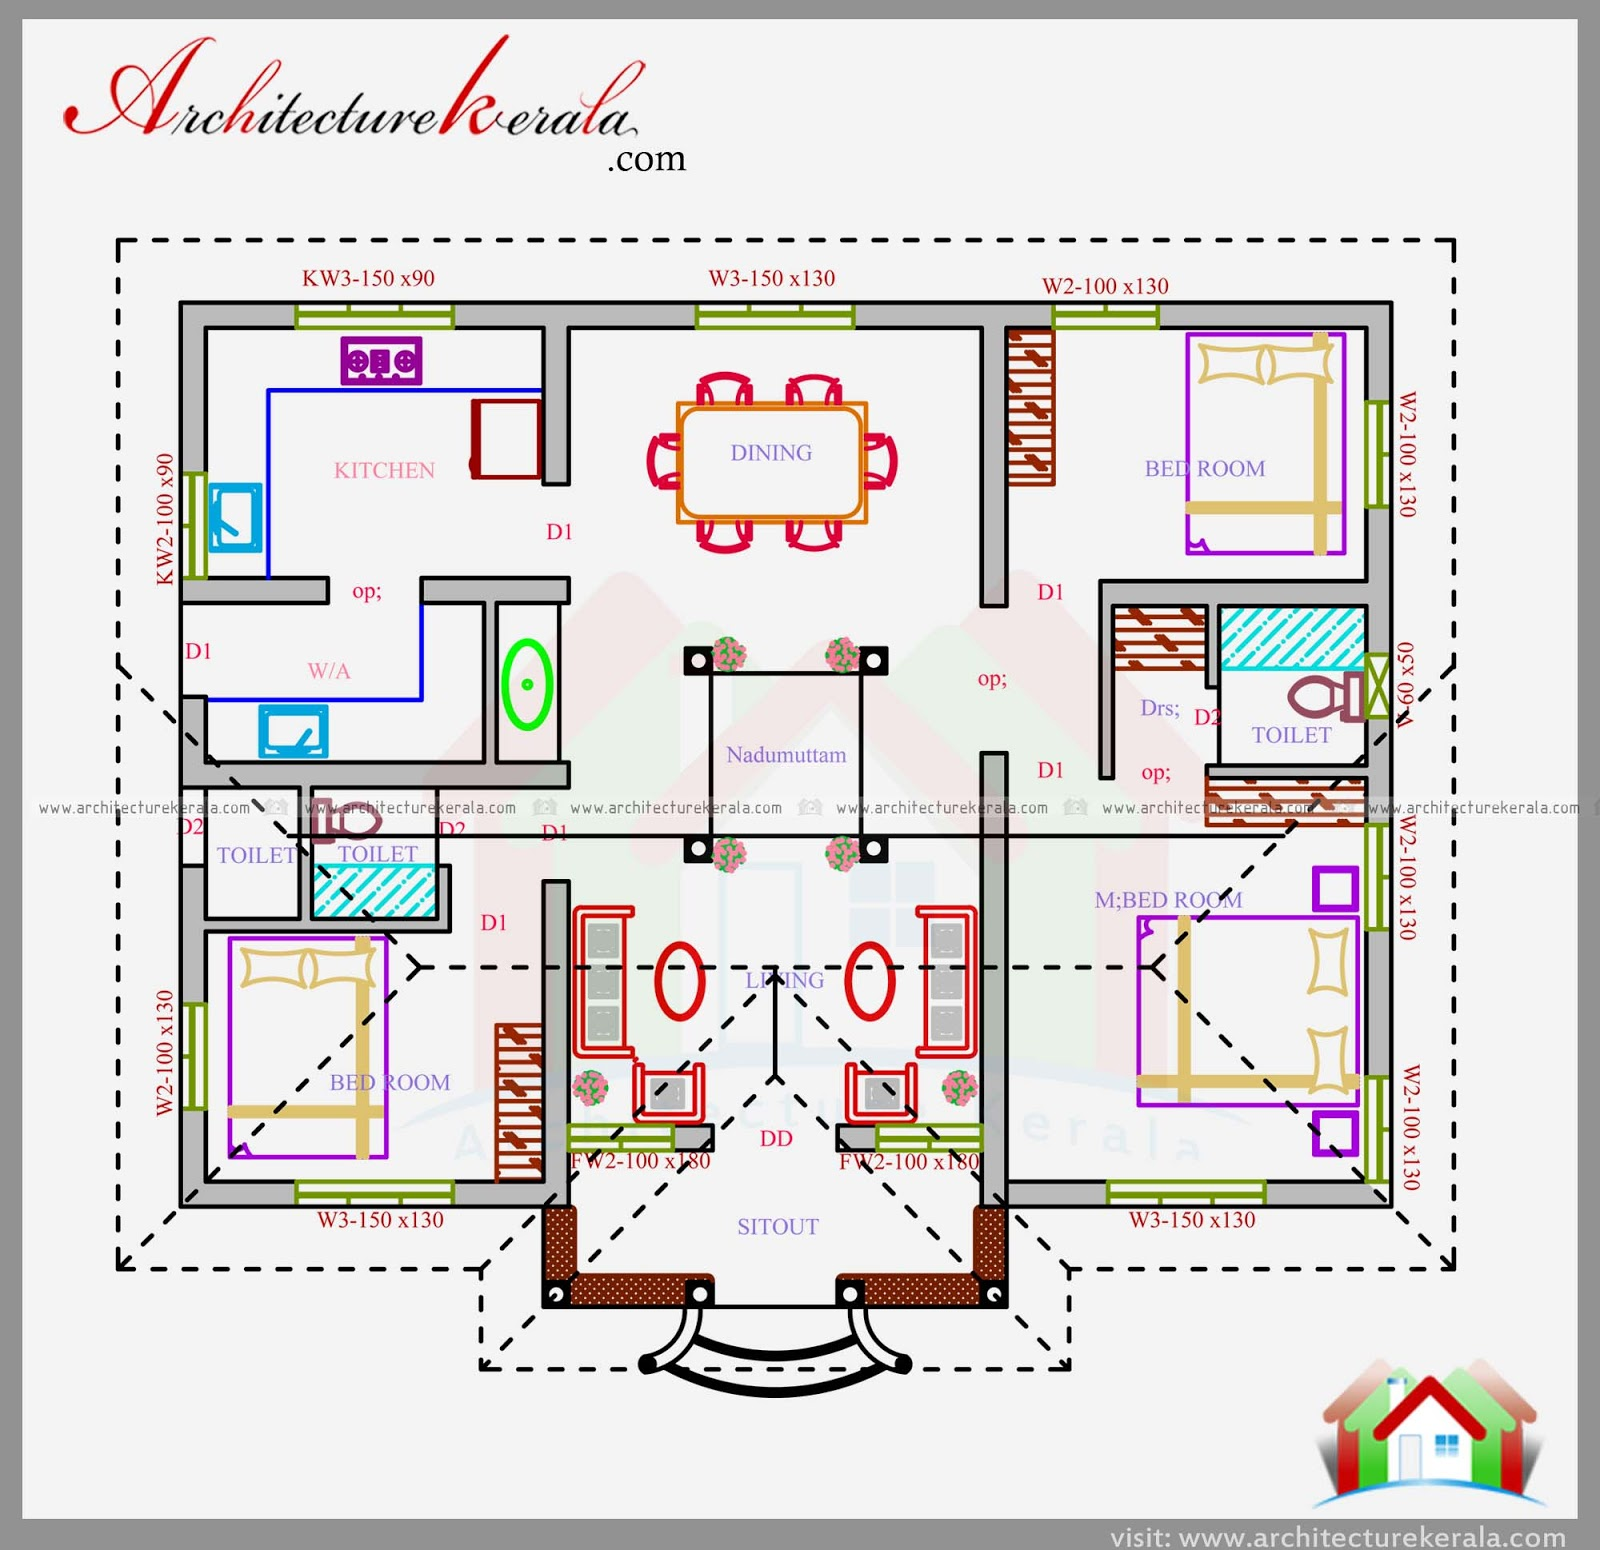 1200 SQ FT HOUSE PLAN IN NALUKETTU DESIGN  ARCHITECTURE KERALA